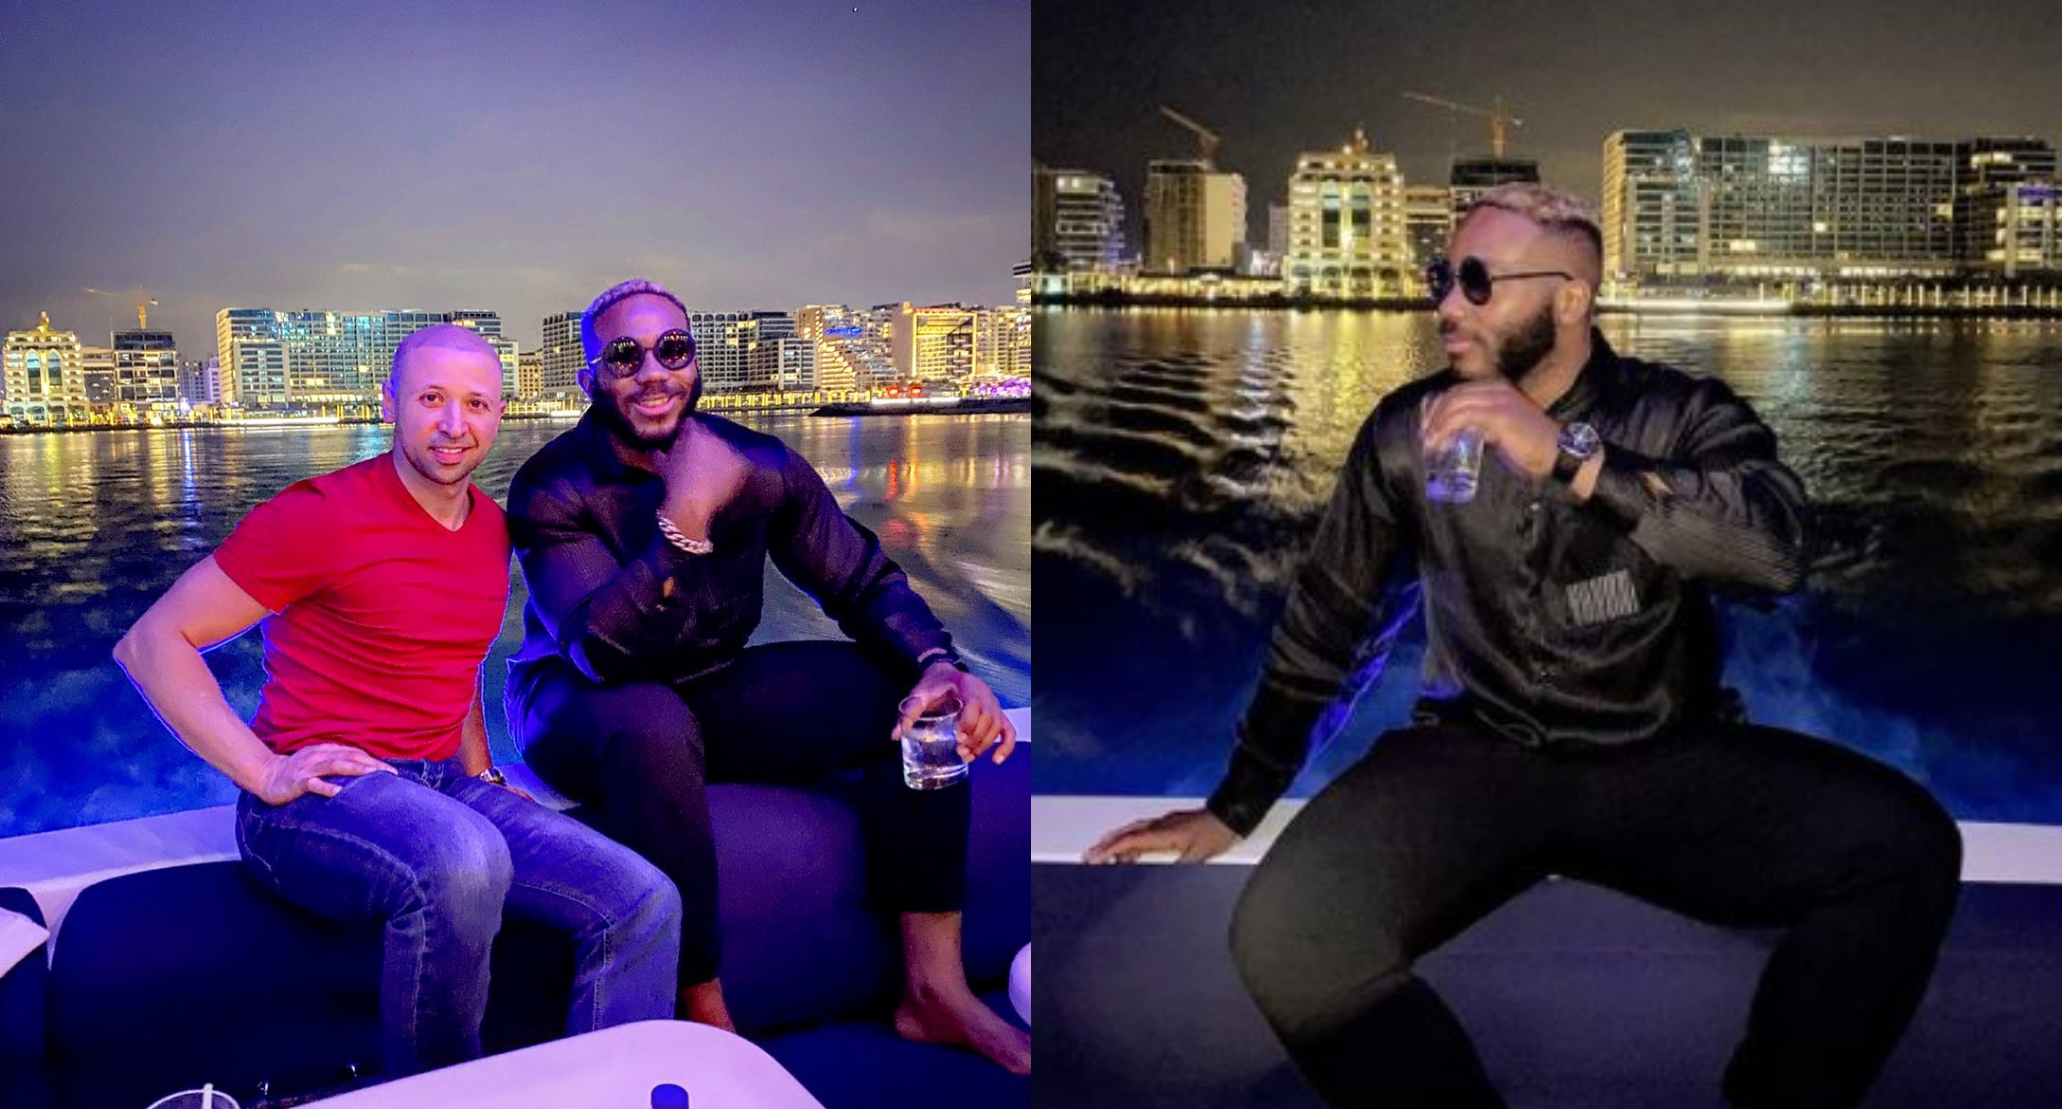 I partied with the king of Dubai's son last night - Kiddwaya brags on social media (Photos)